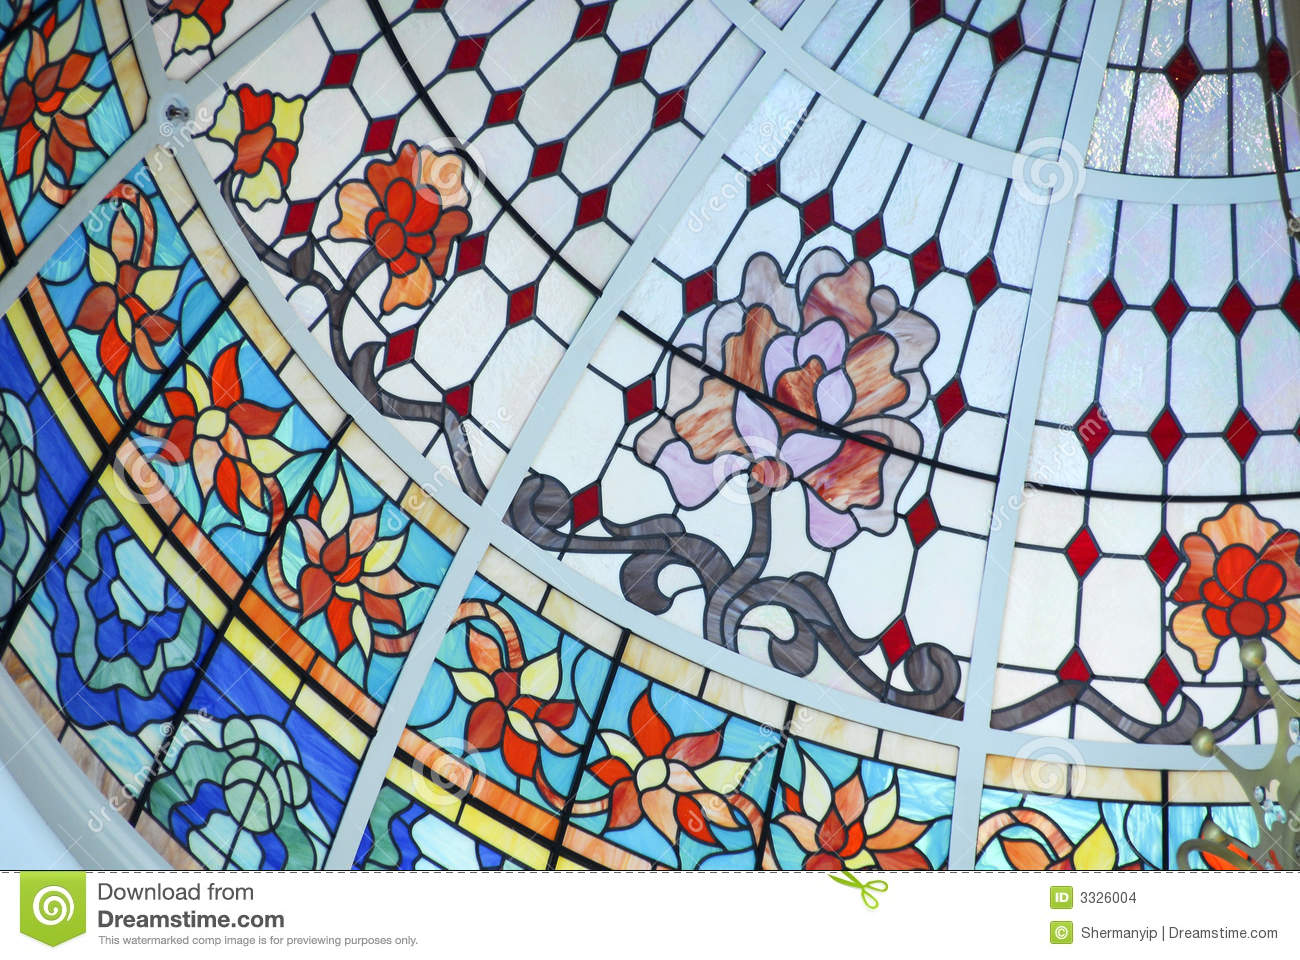 Ceiling Dome in Stained Glass